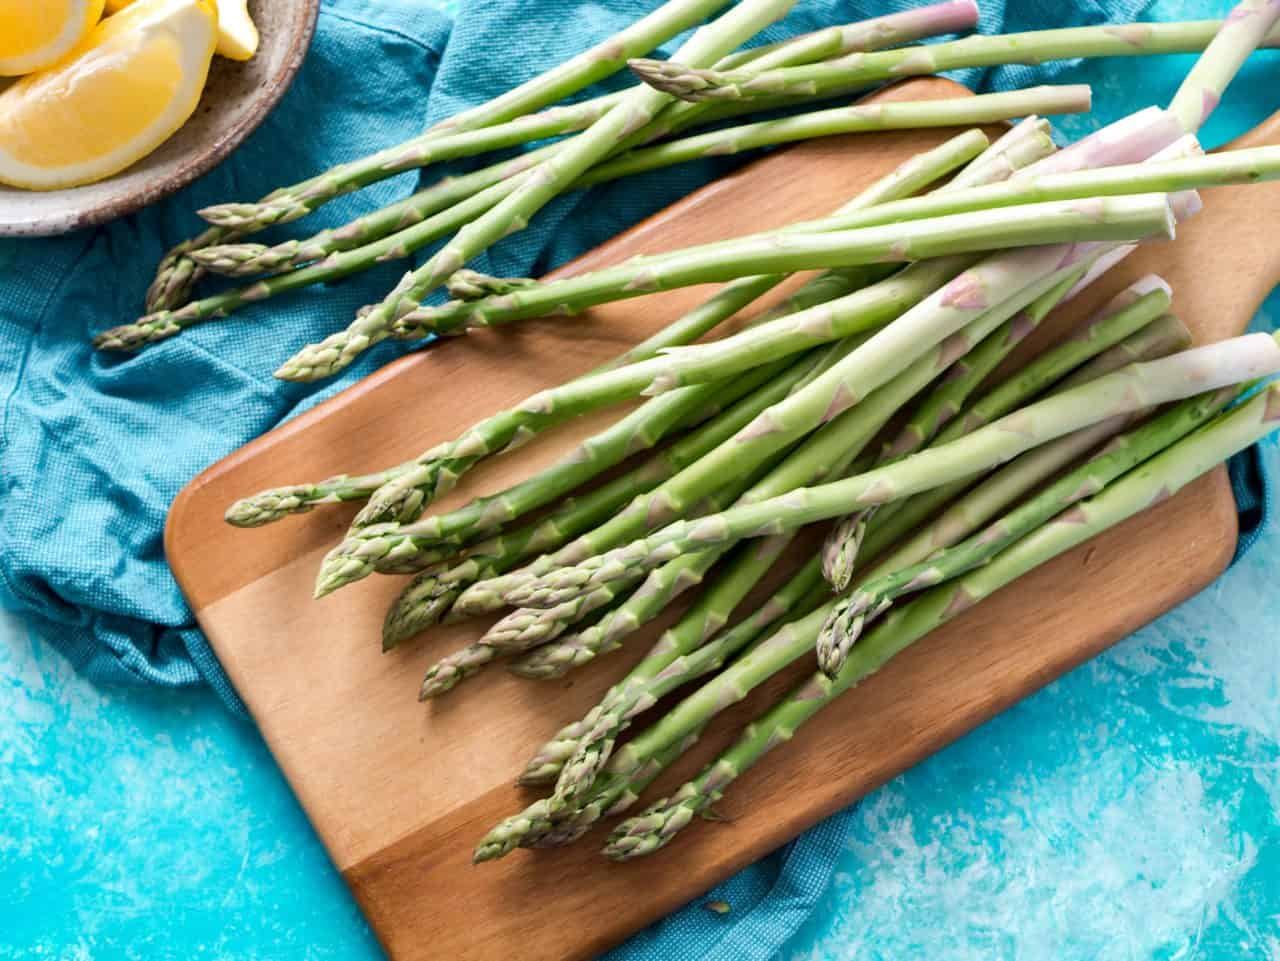 Growing Asparagus The Right Way